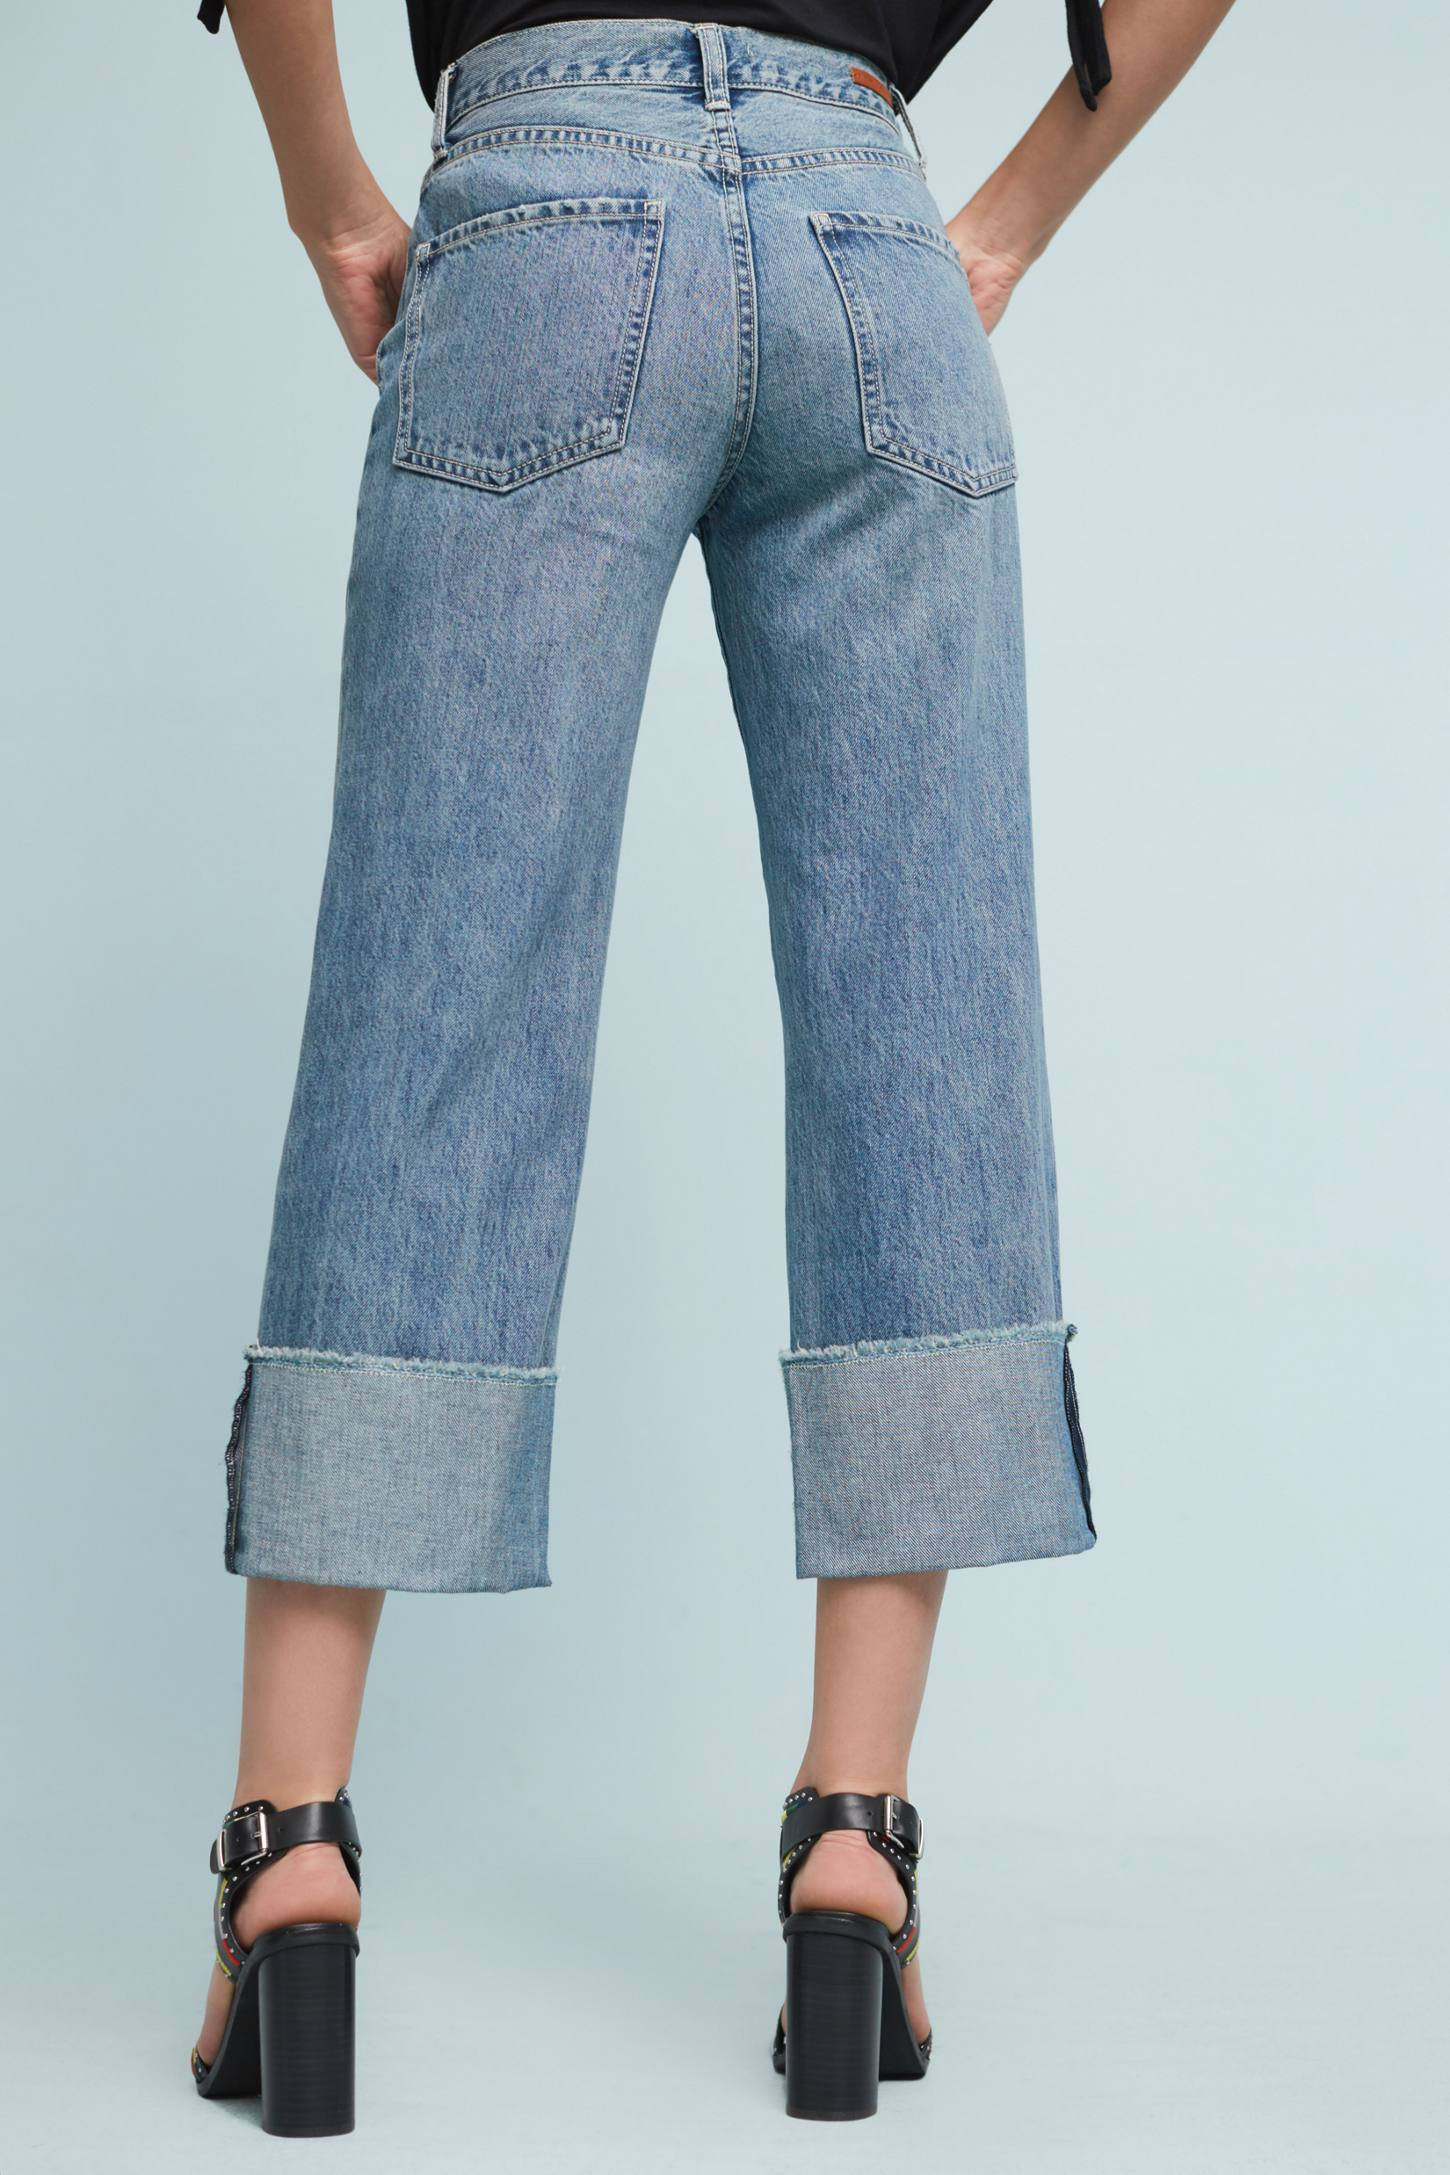 Pilcro Folio Ultra High-Rise Cuffed Jeans | Anthropologie